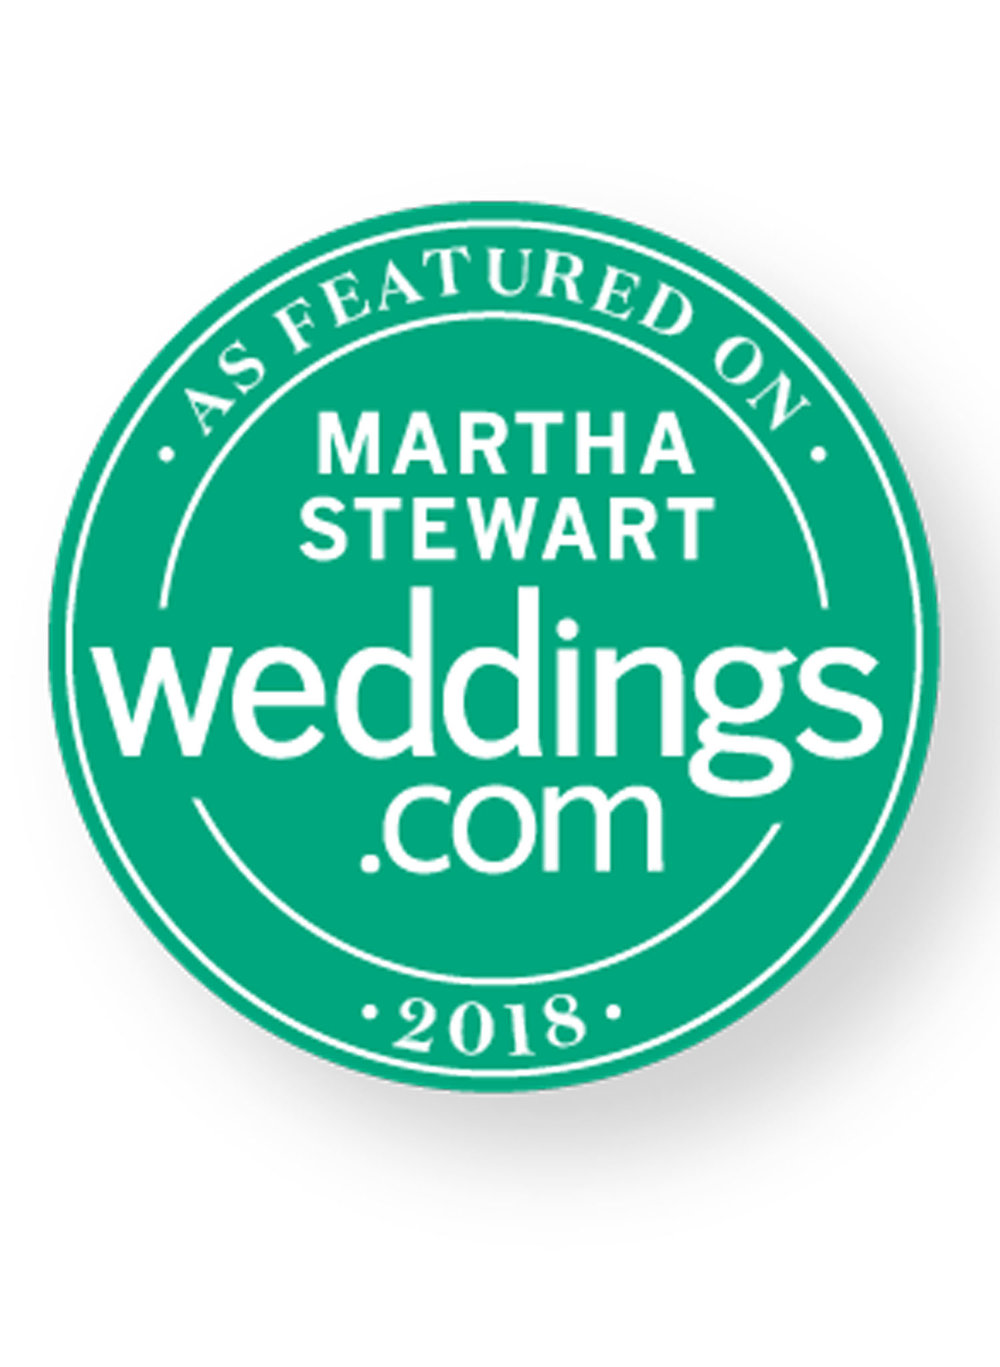 Martha Stewart Badge.jpg